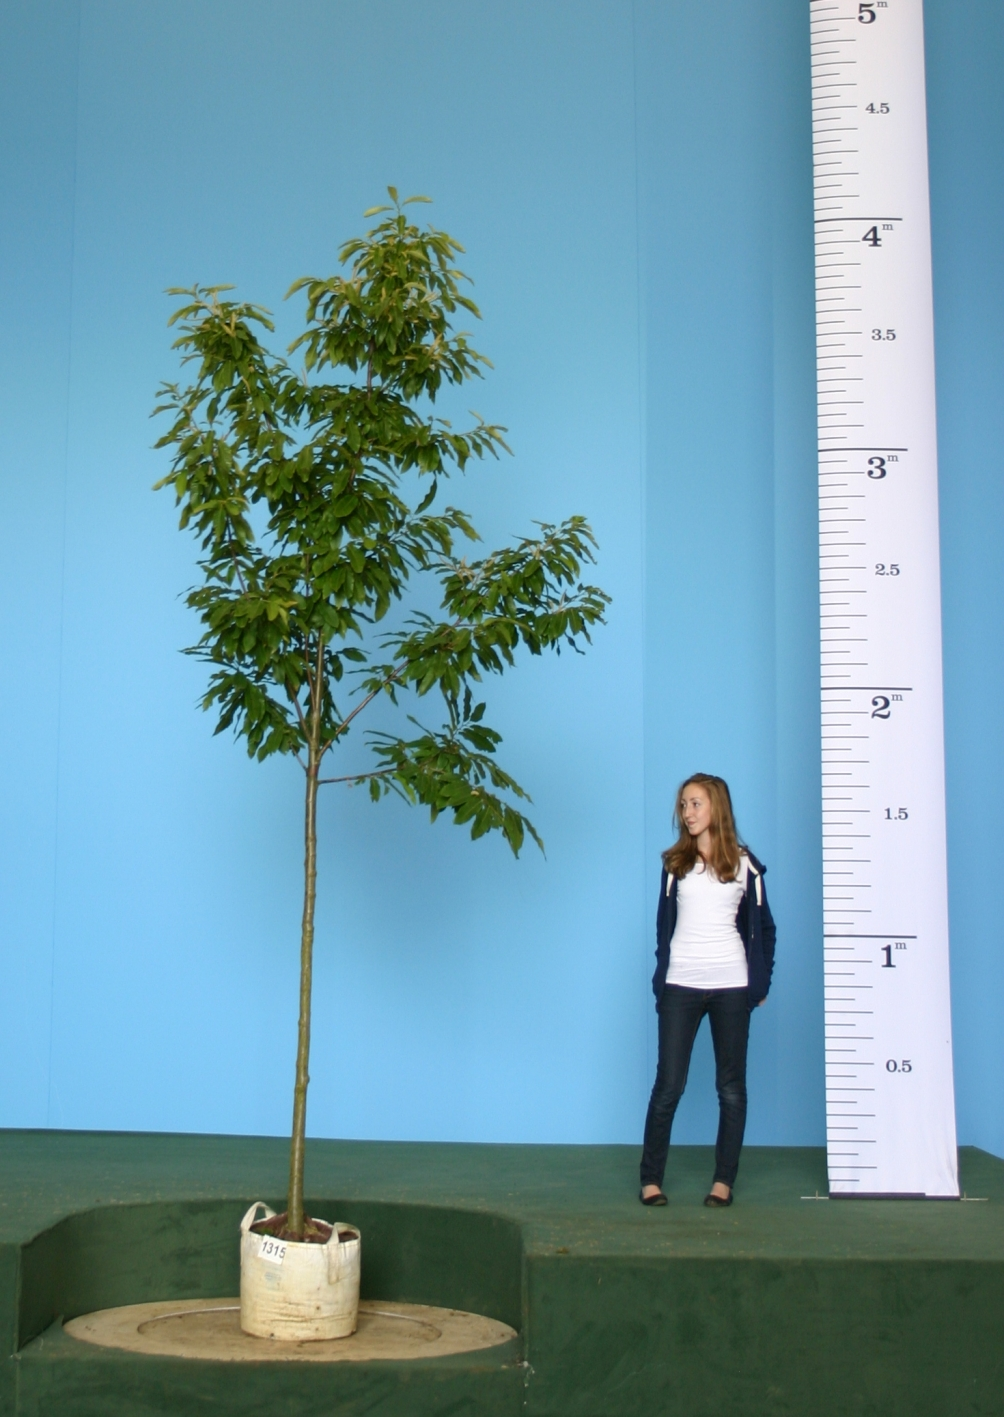 A scaled, medium sized specimen of Castanea sativa A mature specimen of Castanea sativa in an urban environment Medium sized Castanea sativa on the Barcham Trees nursery A young Castanea sativa at Westornbirt arboretum